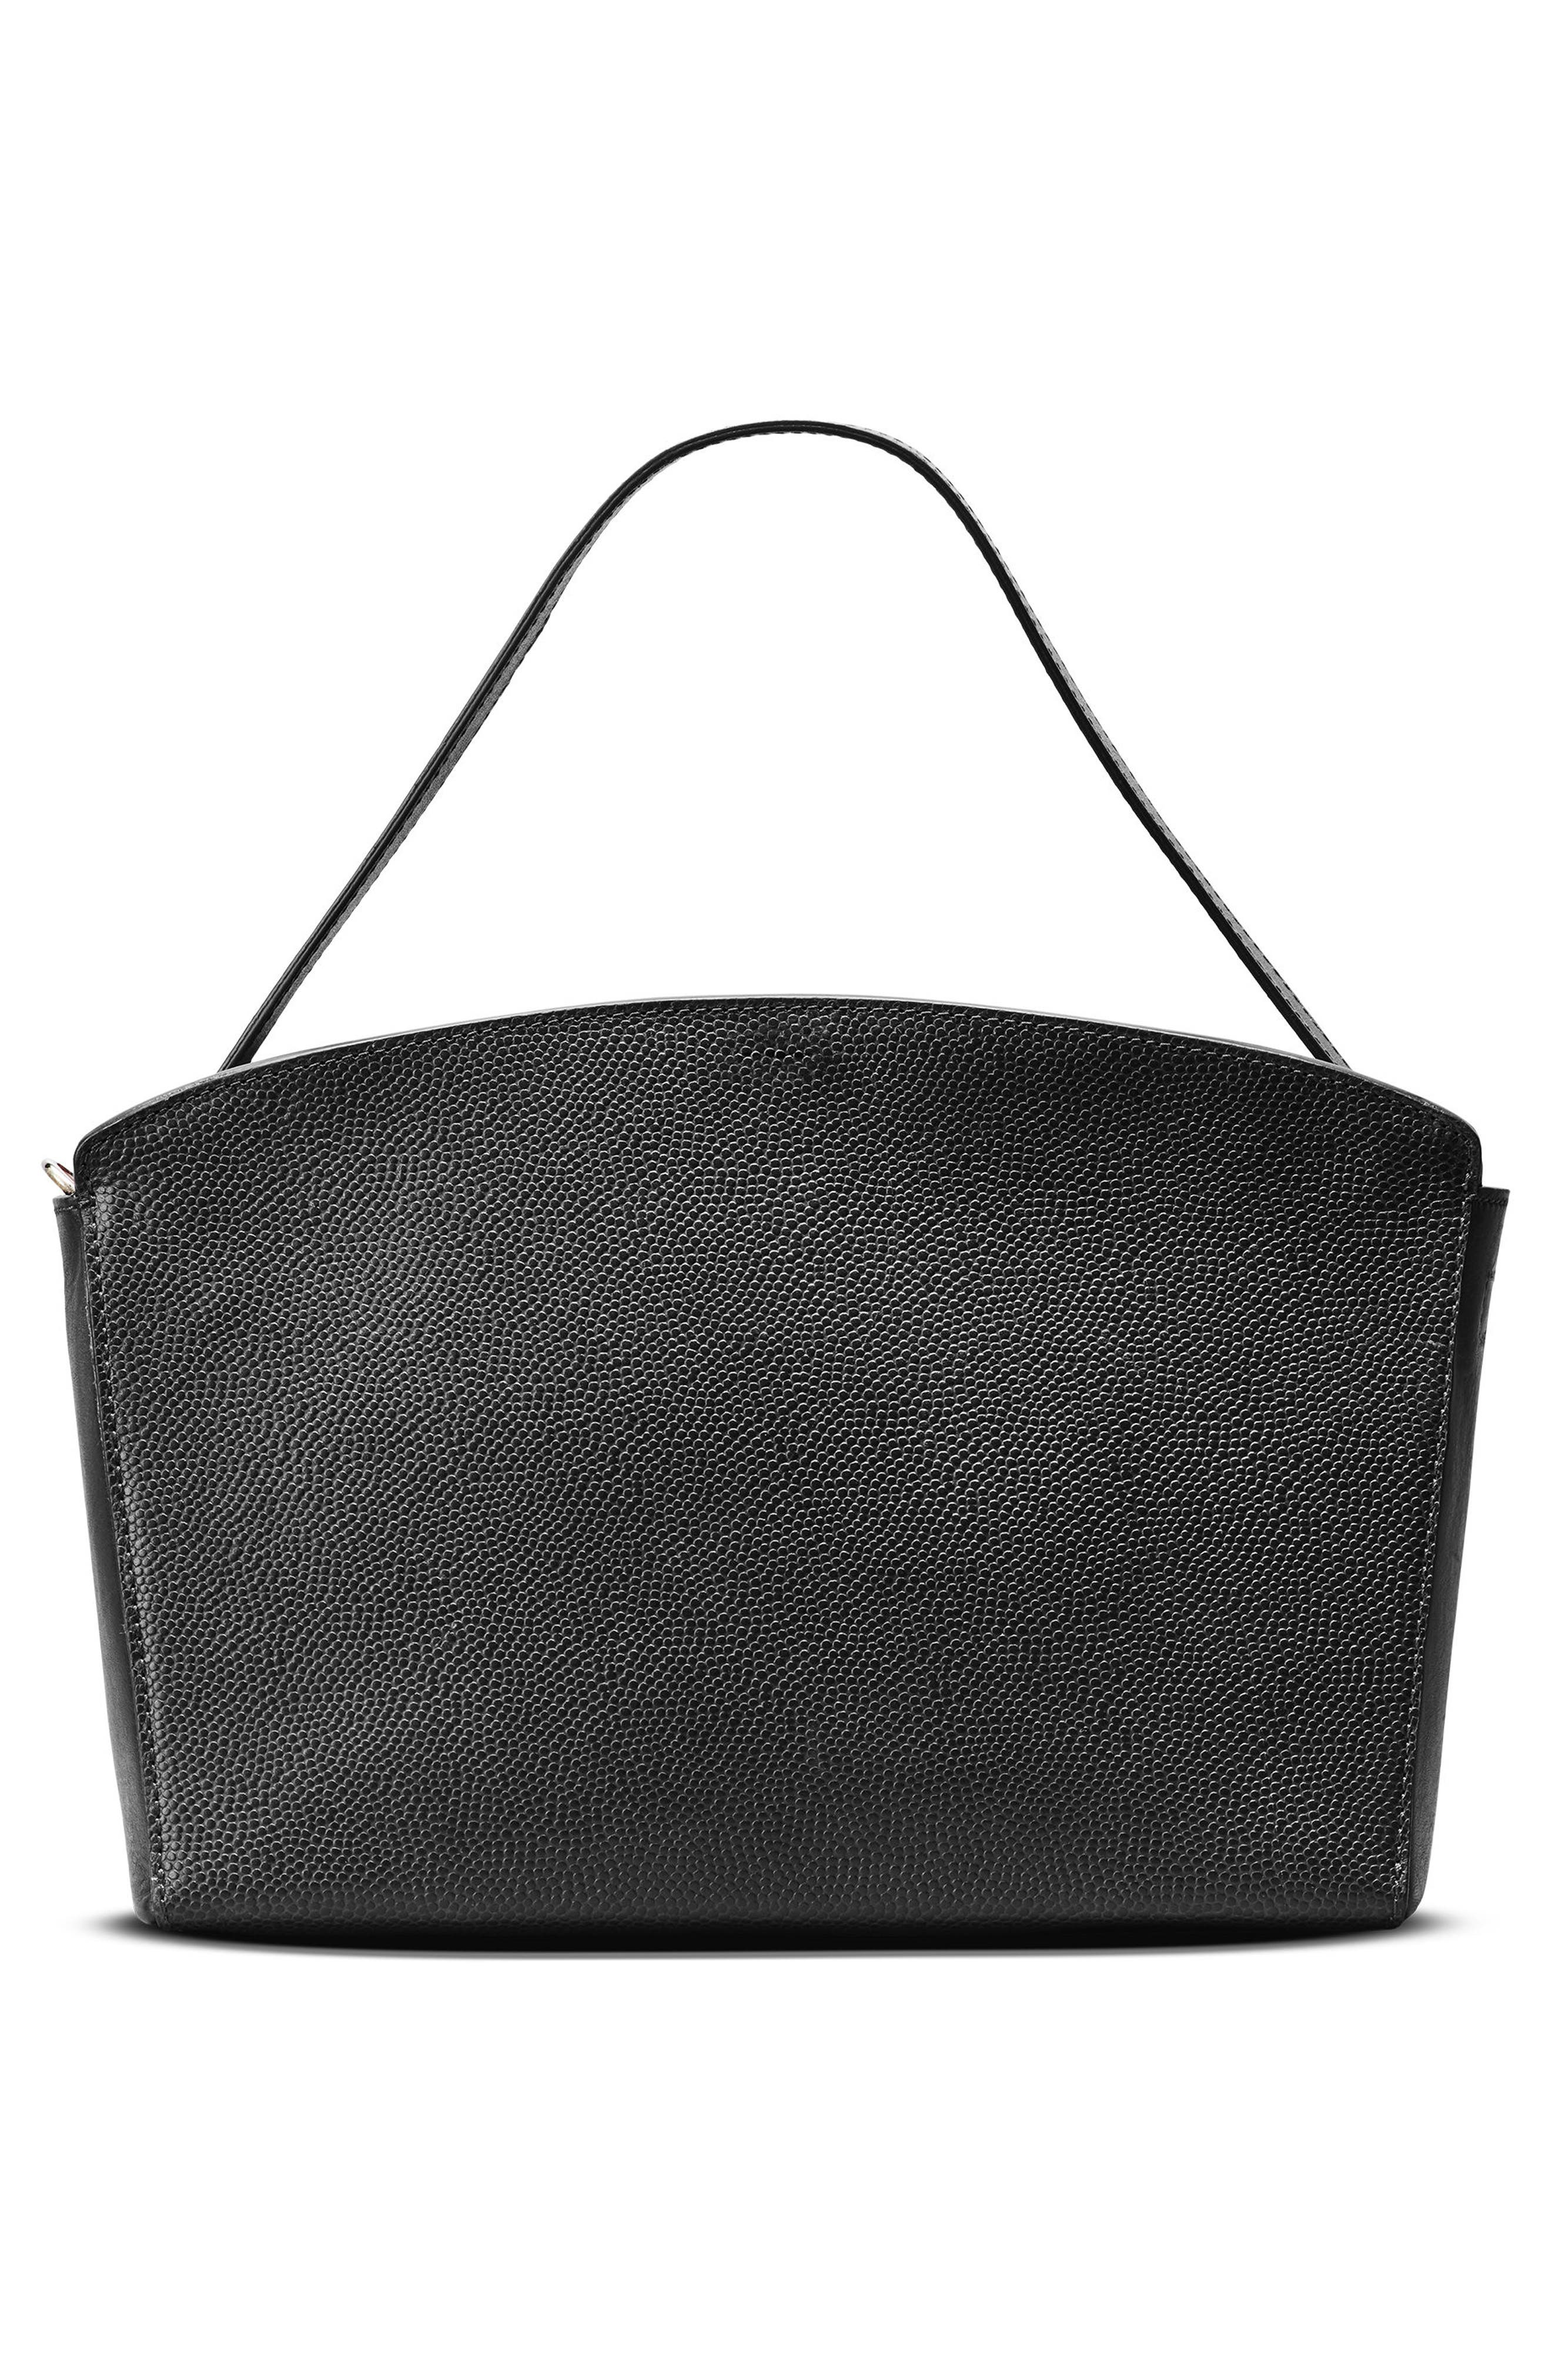 Curved Latigo Leather Satchel,                             Alternate thumbnail 2, color,                             Black